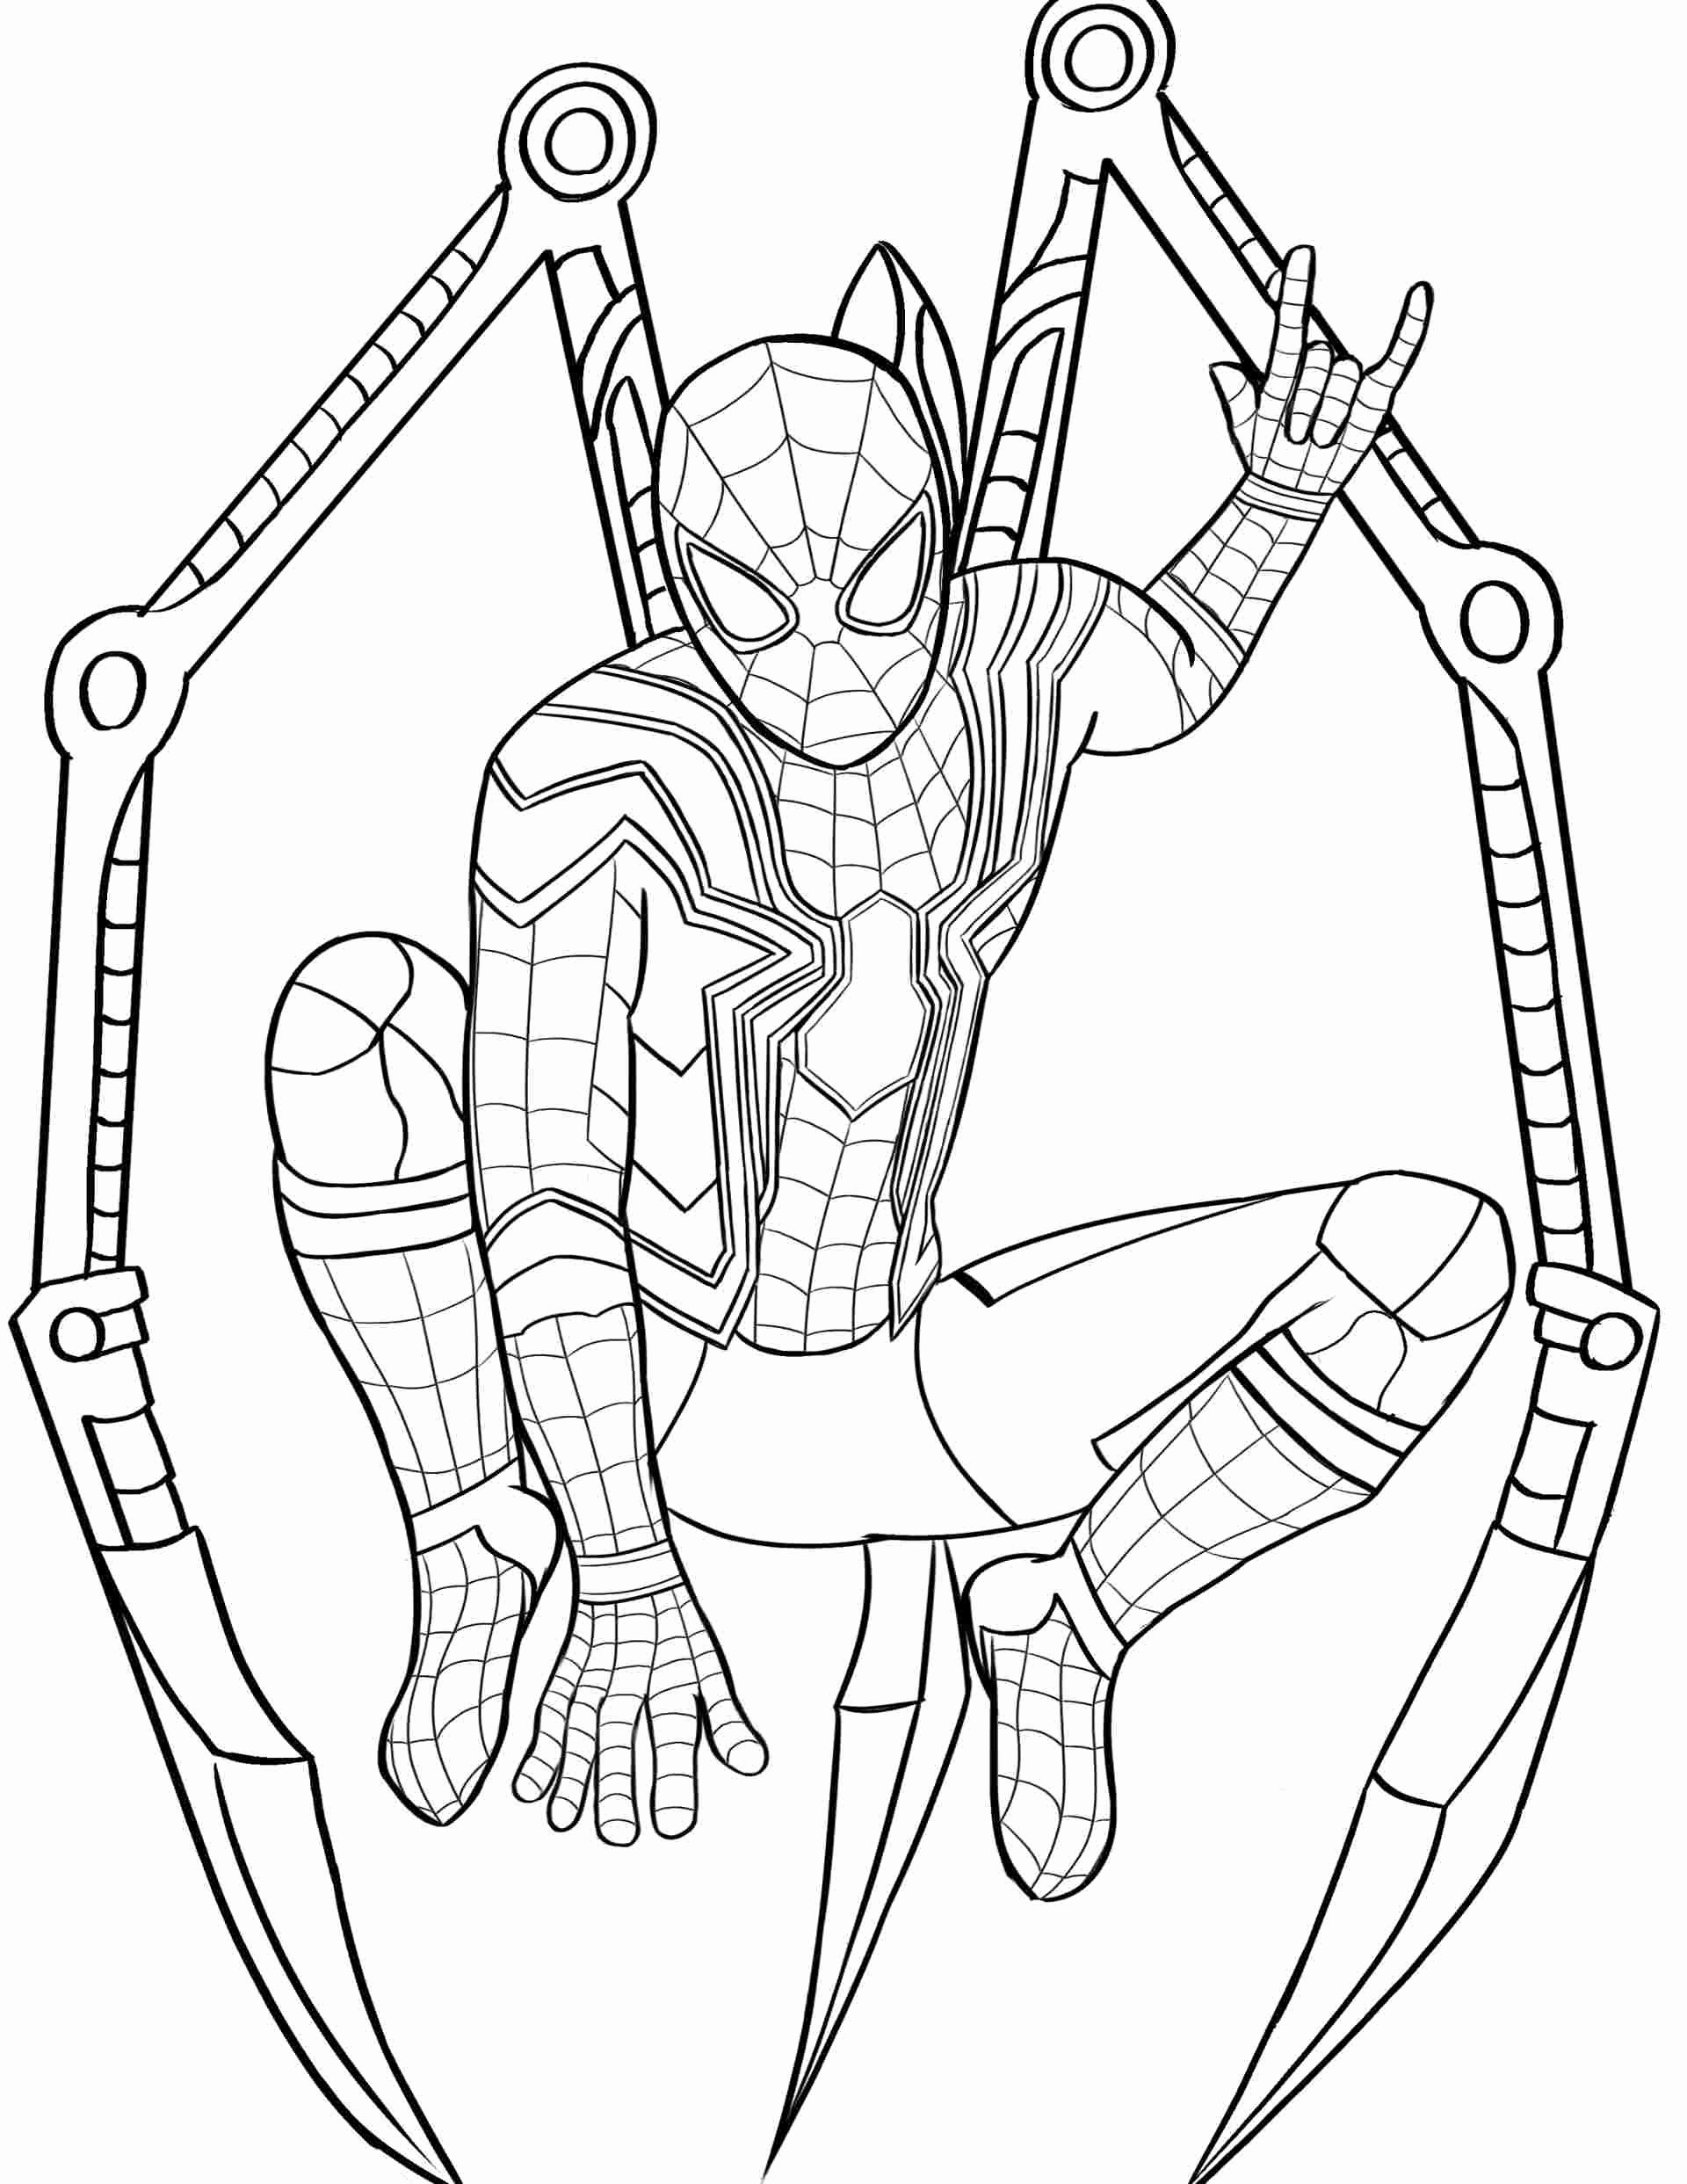 Avengers Miles Morales Spiderman Coloring Pages For Kids In 2020 Spider Coloring Page Avengers Coloring Avengers Coloring Pages